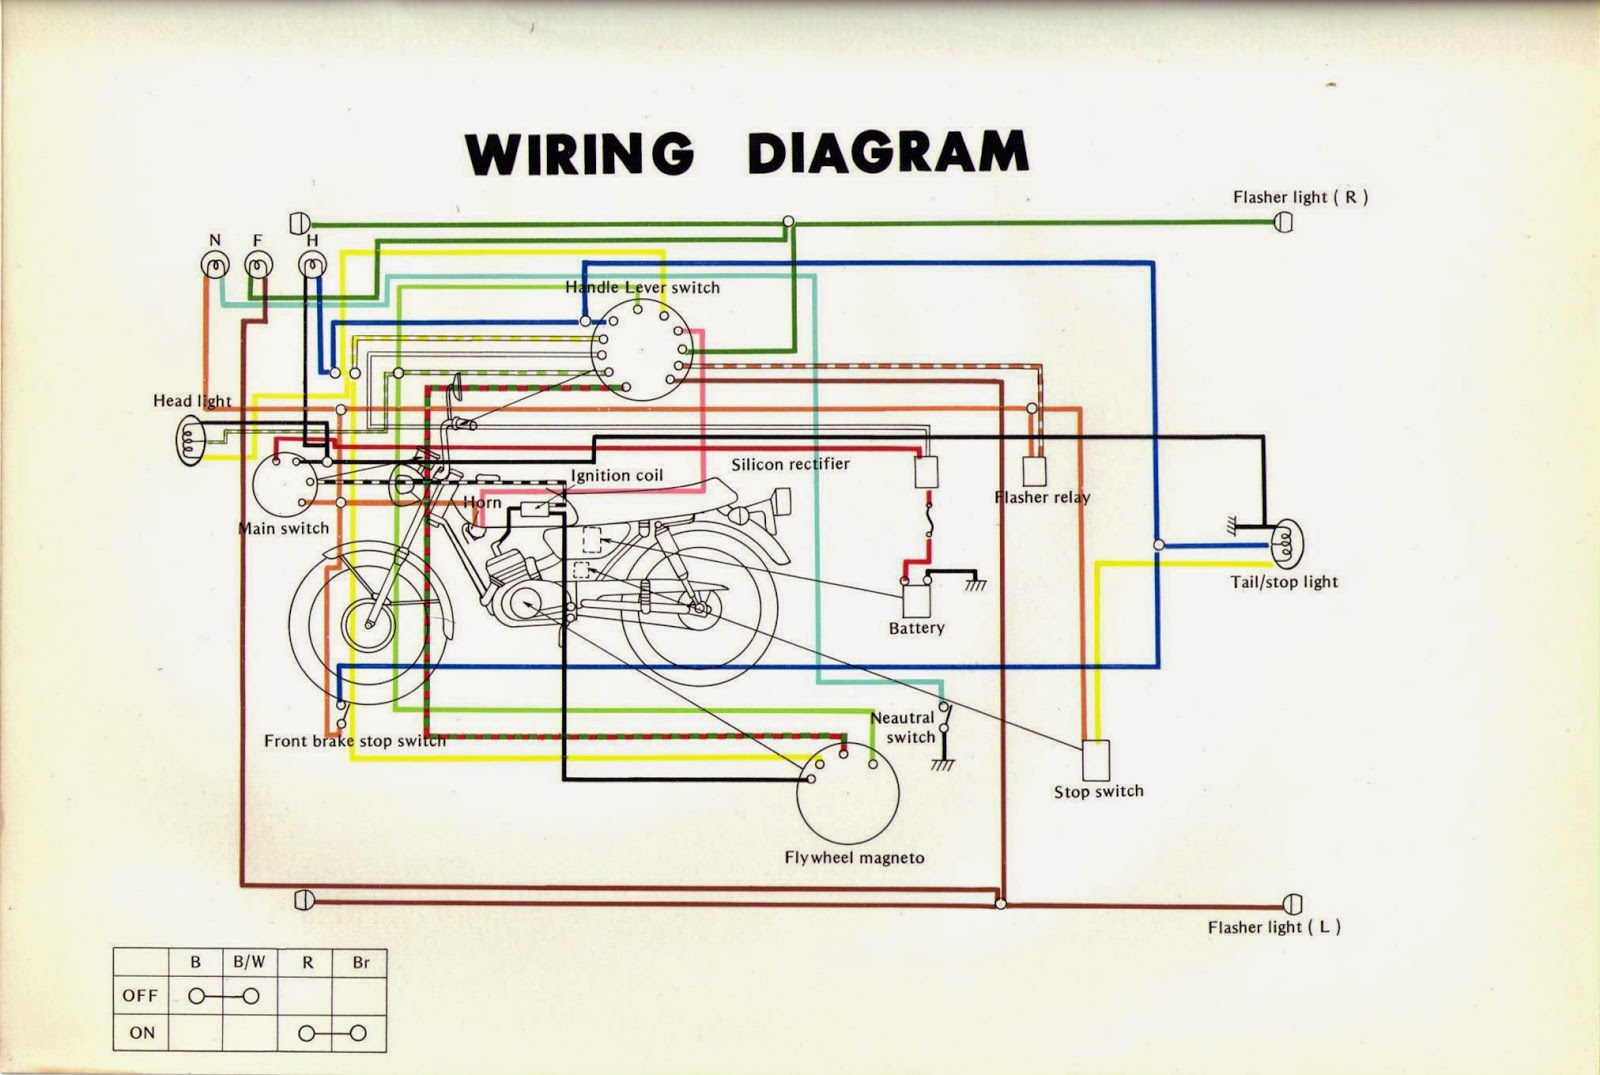 Yamaha service manual003 restoration yamaha ls3 1972 october 2014 yamaha dt 100 wiring diagram at reclaimingppi.co